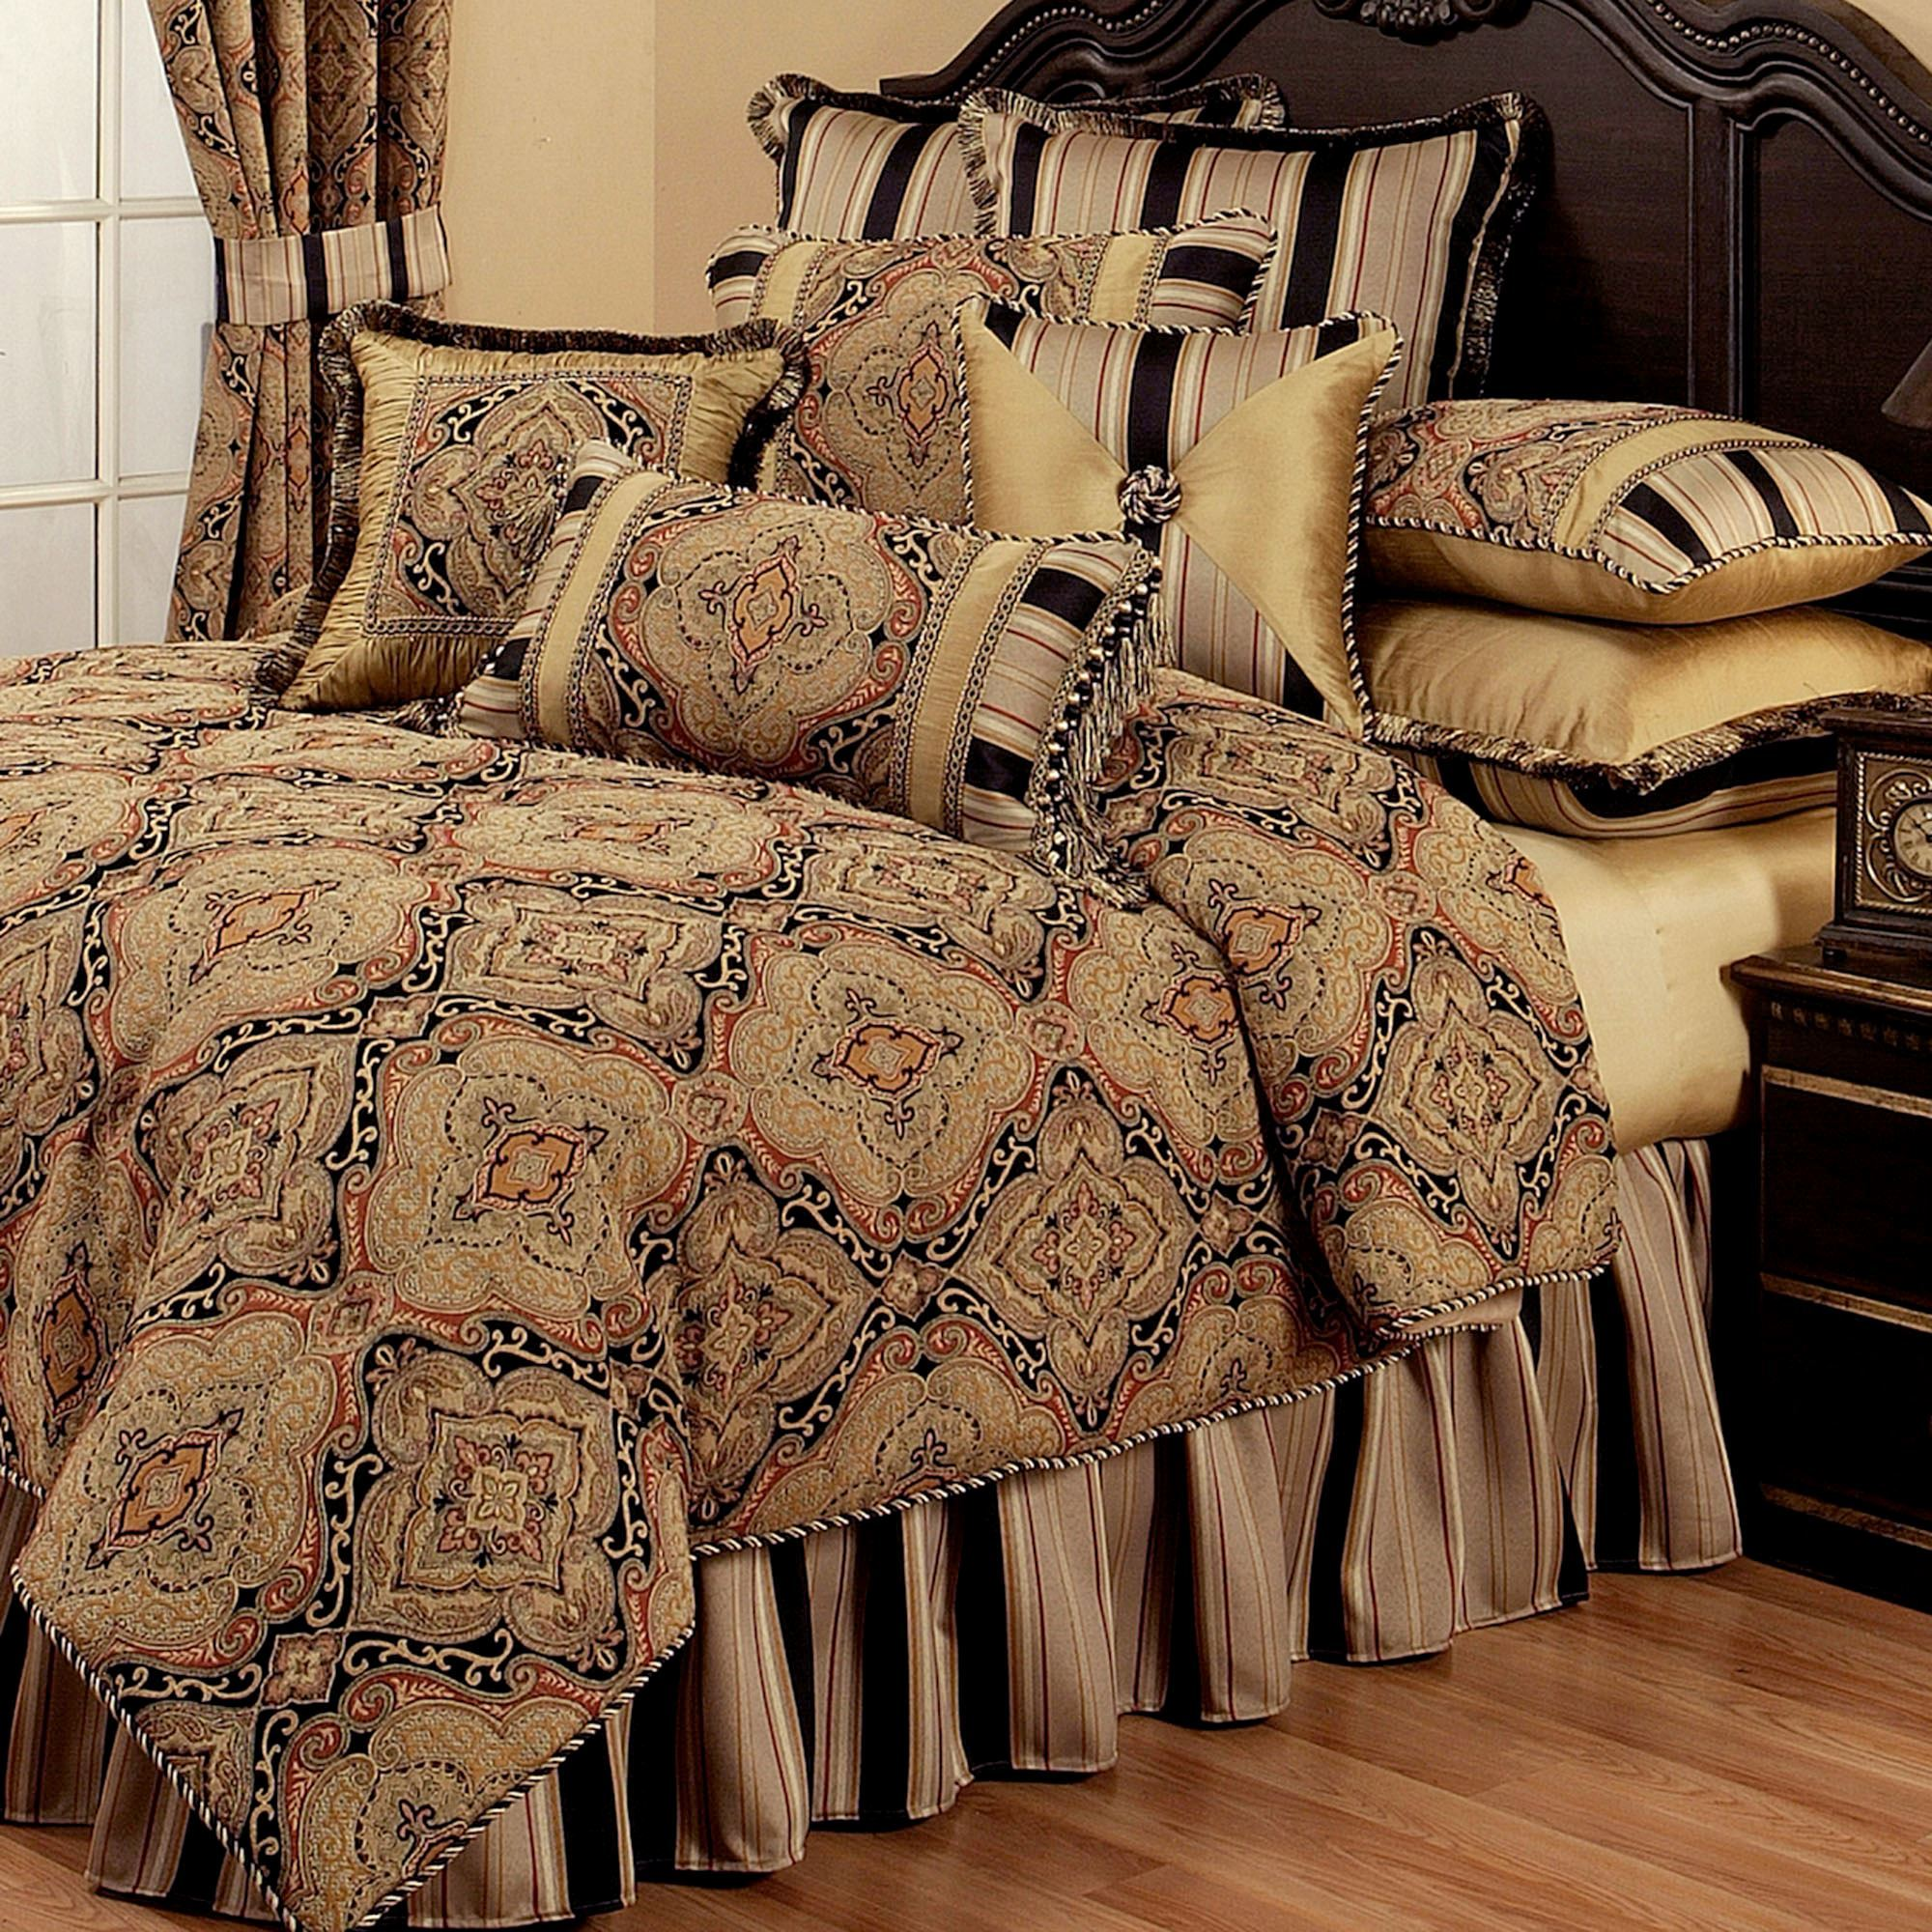 ideas red targe comforters seemly set warm state blue insert orange of floral collection quilts nice also bed cover duvet white beyond bedroom comforter target queen king eugene duvets sheets quilt and navy twin bath linen sets size sheet covers bedding with mens beds full